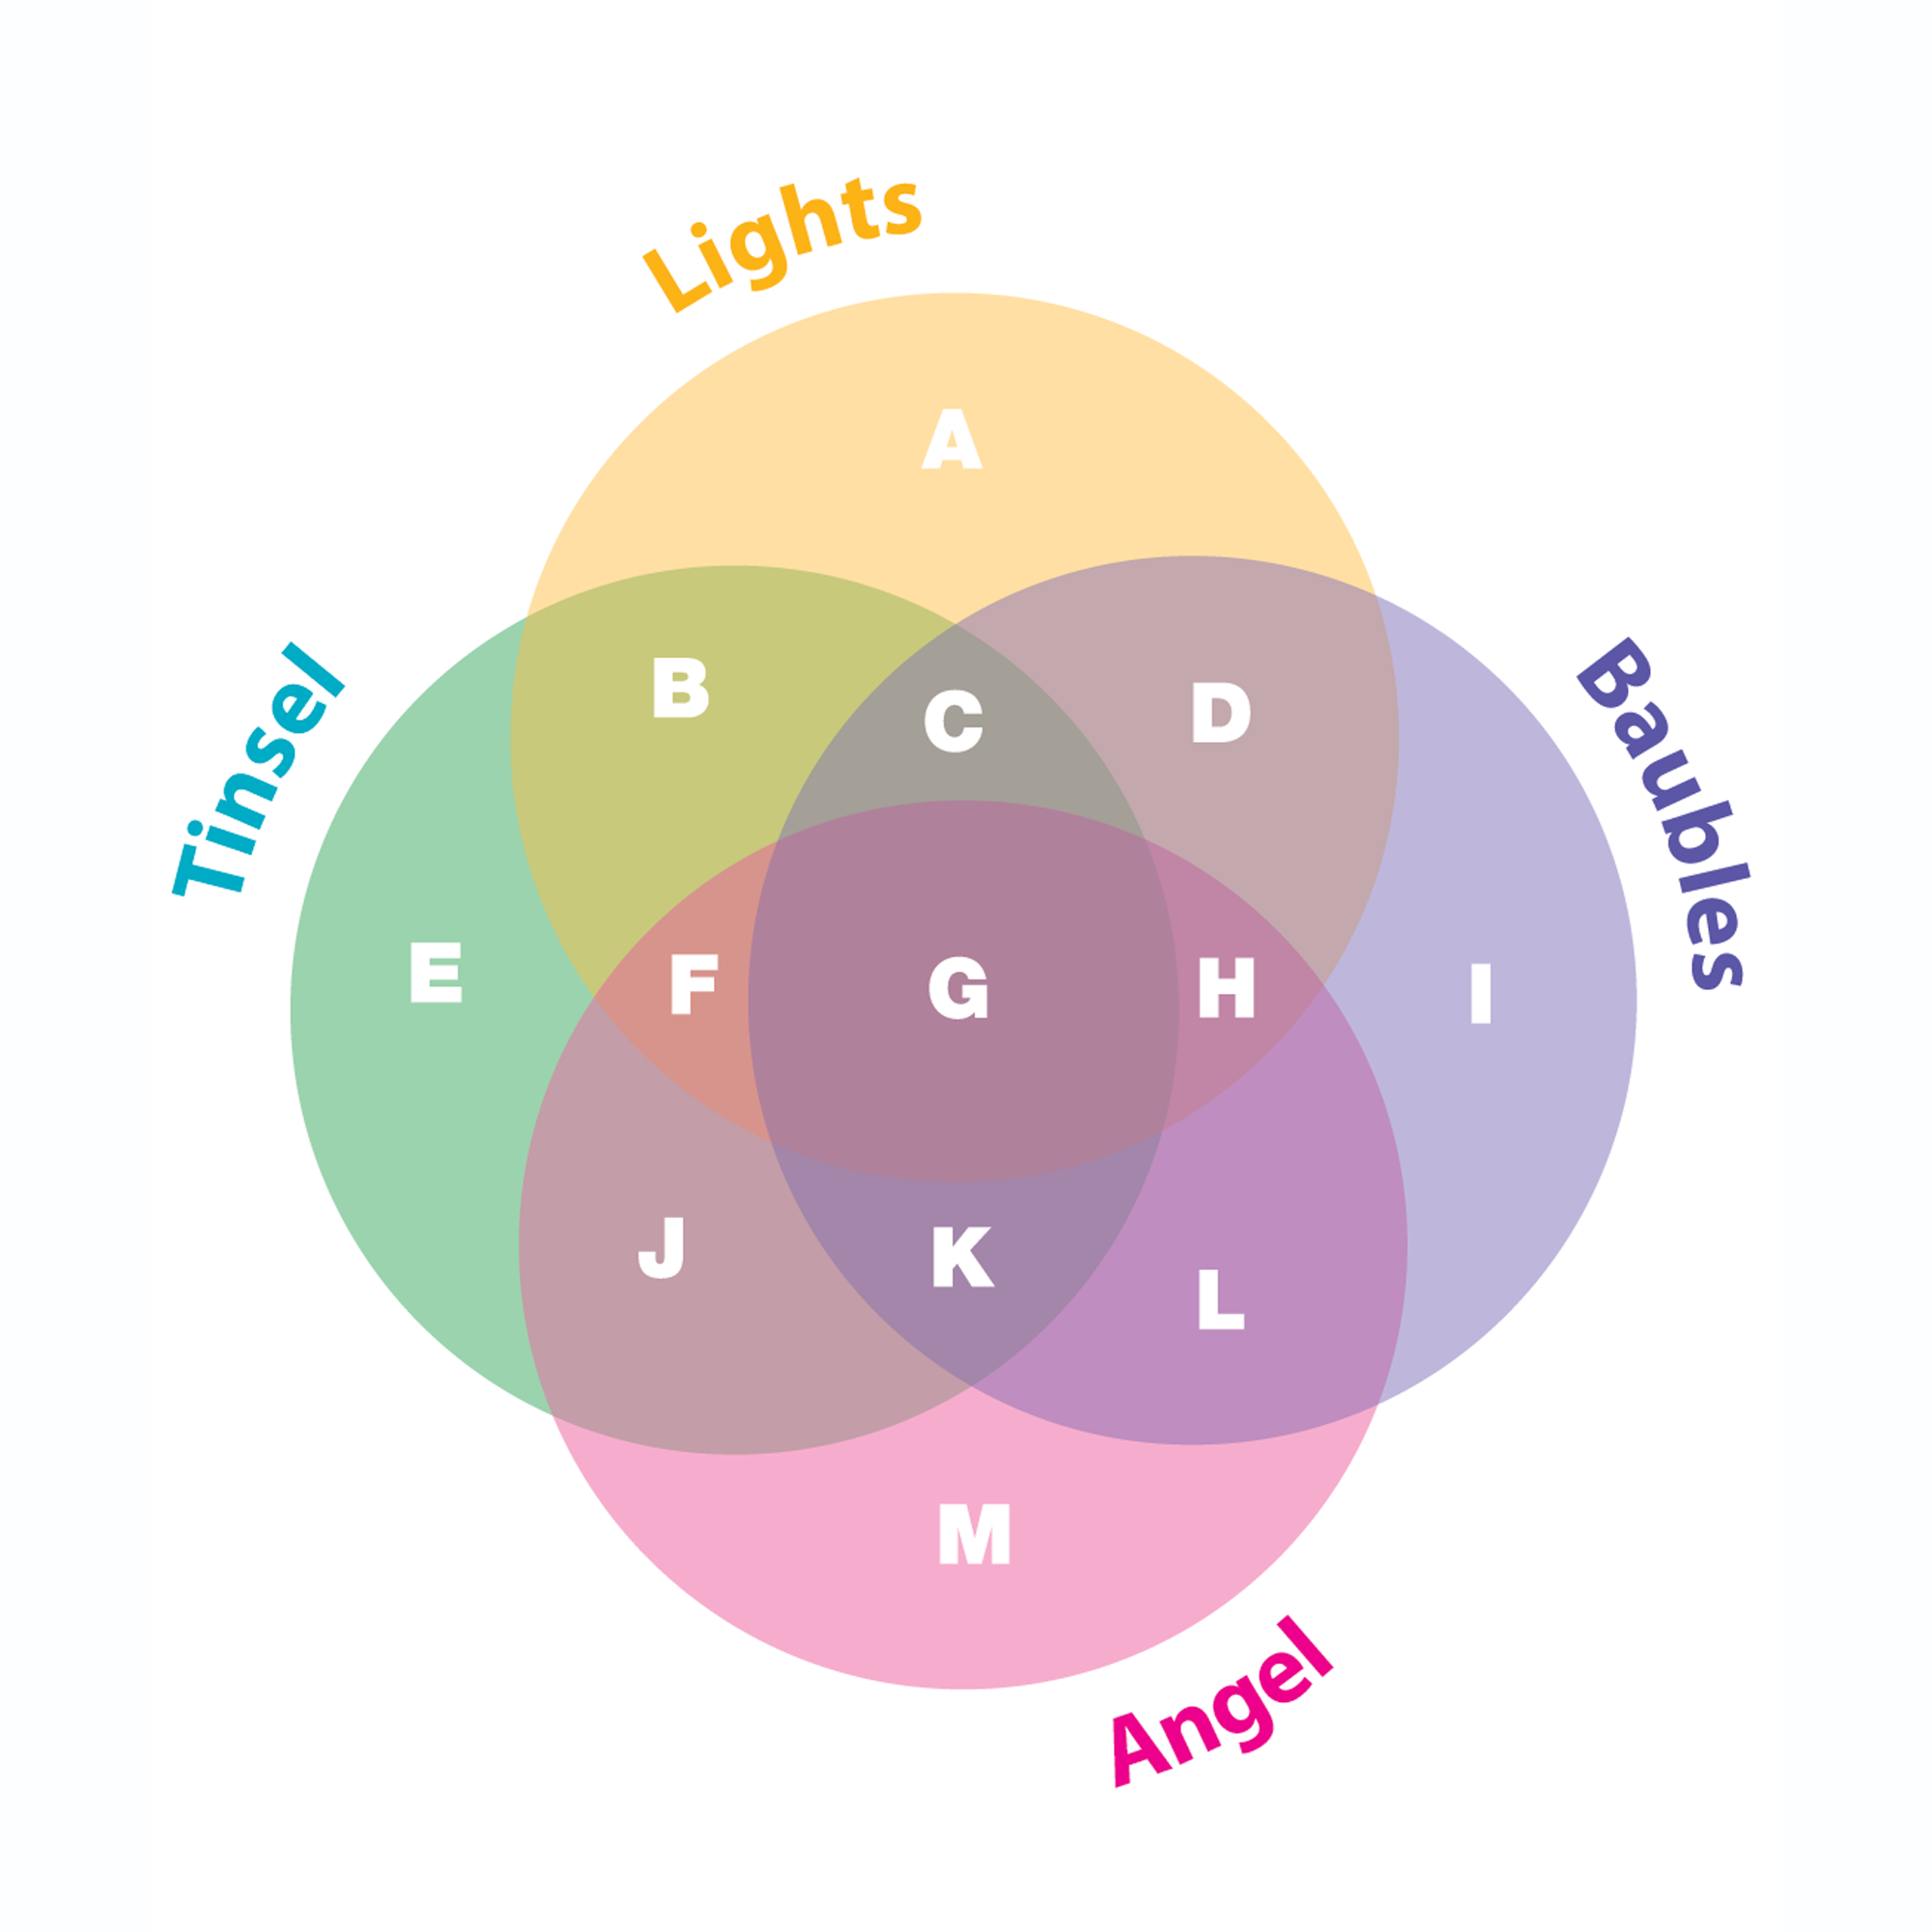 Can you work out which two areas of this diagram represent Christmas trees with tinsel and lights and baubles and a star on top, and Christmas trees with baubles and lights but no tinsel and that have an angel on top?  VENN DIAGRAMS |  Syndicated series from Knight Features.